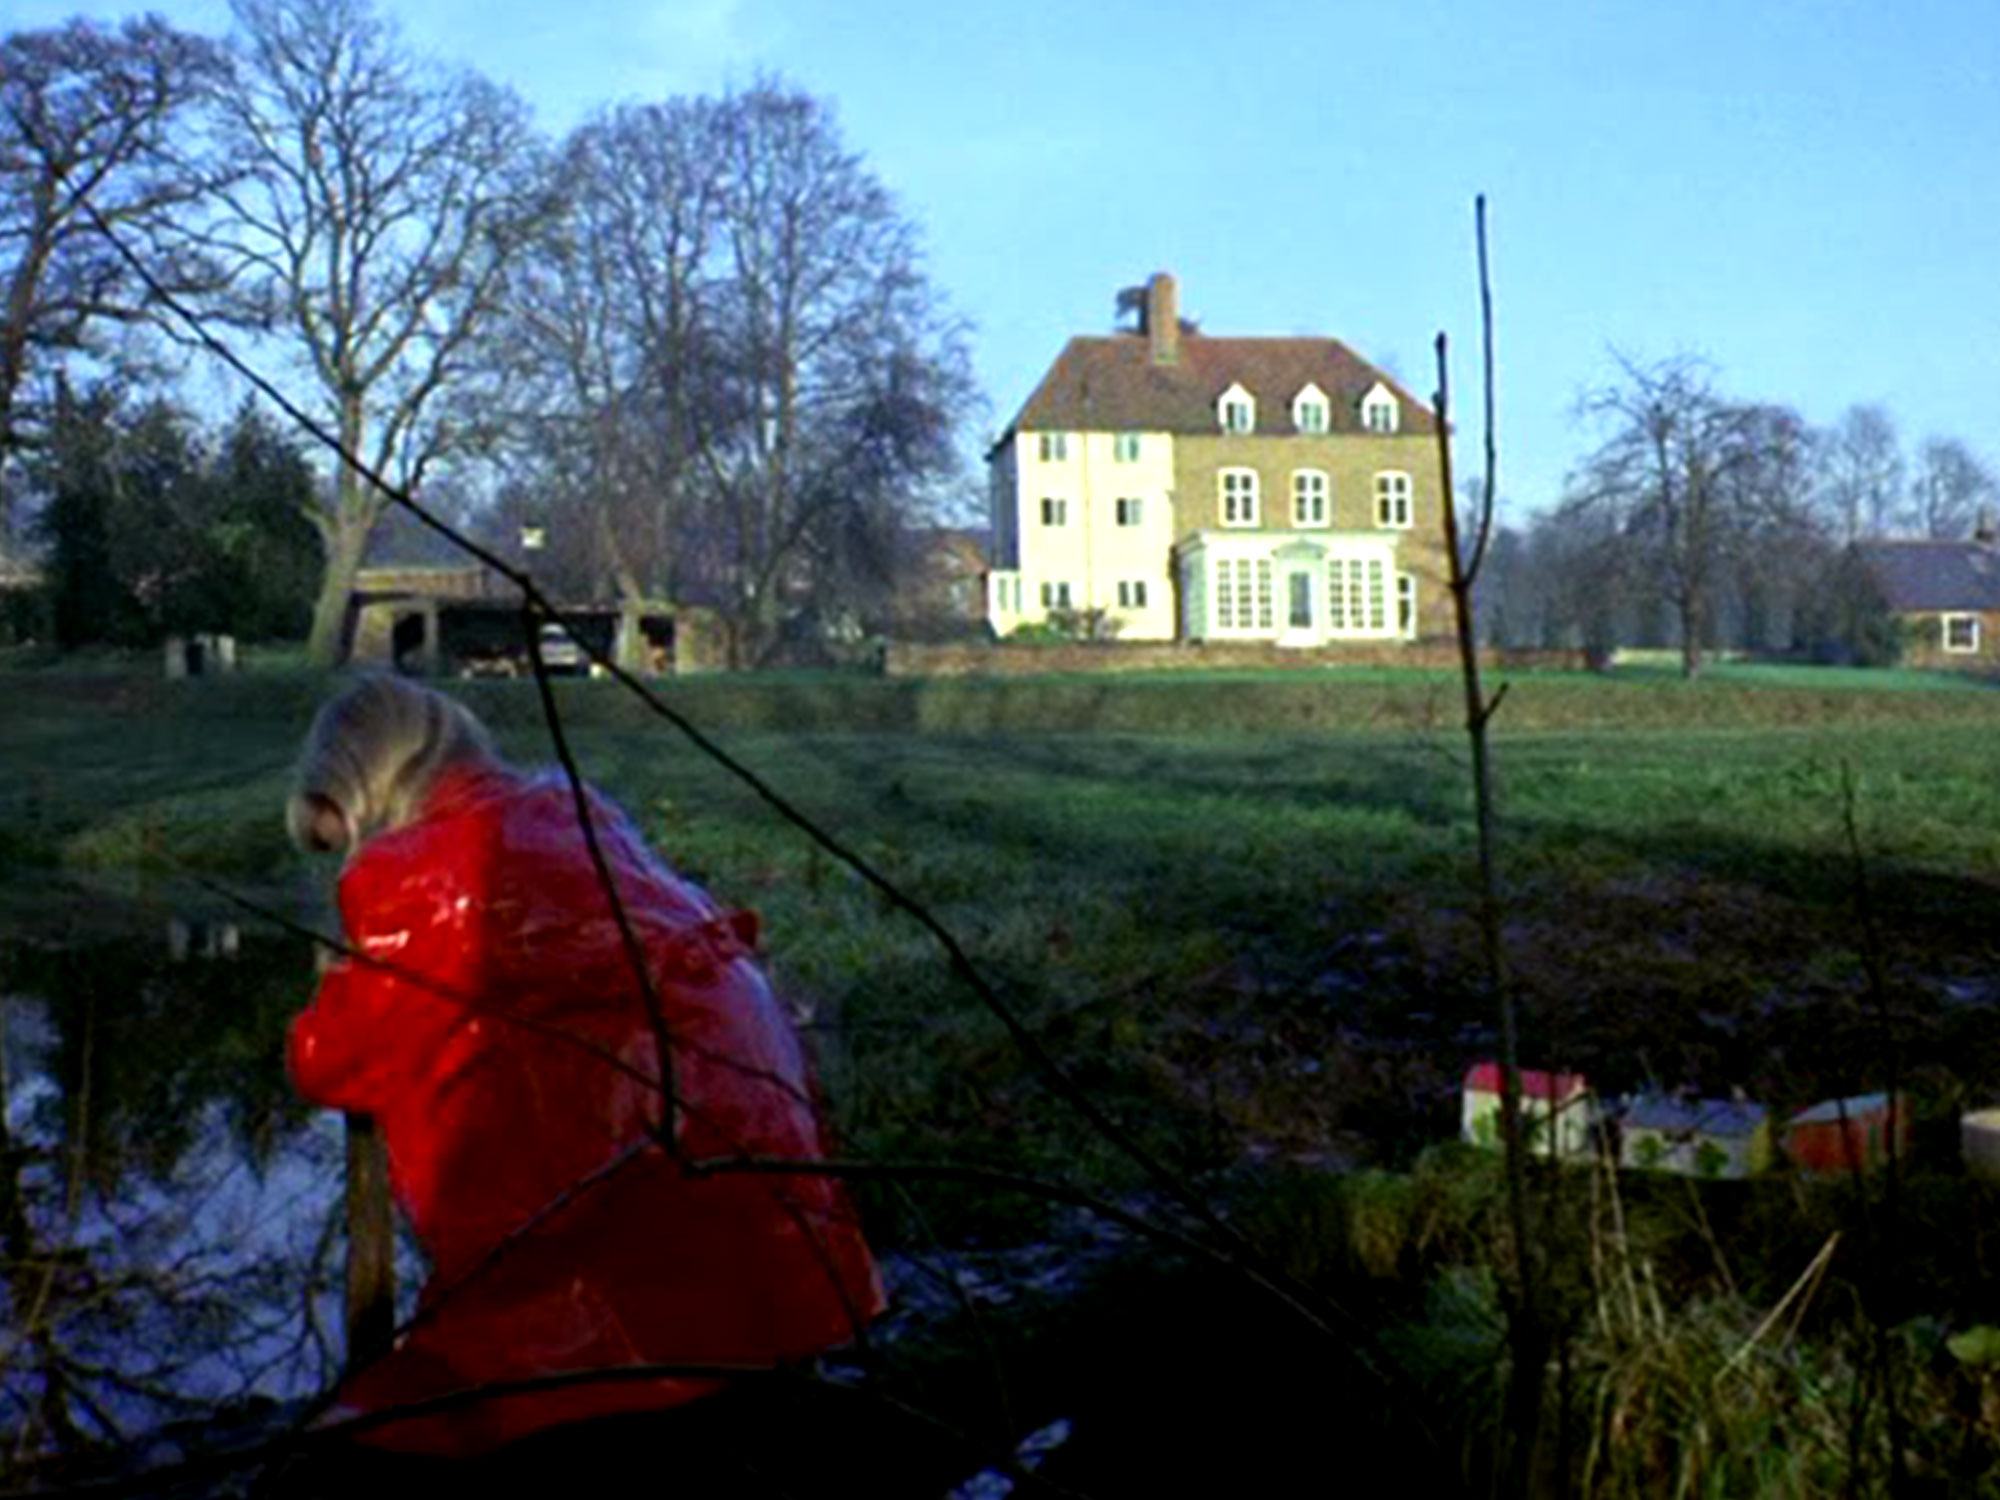 On Location: The house from Don't Look Now